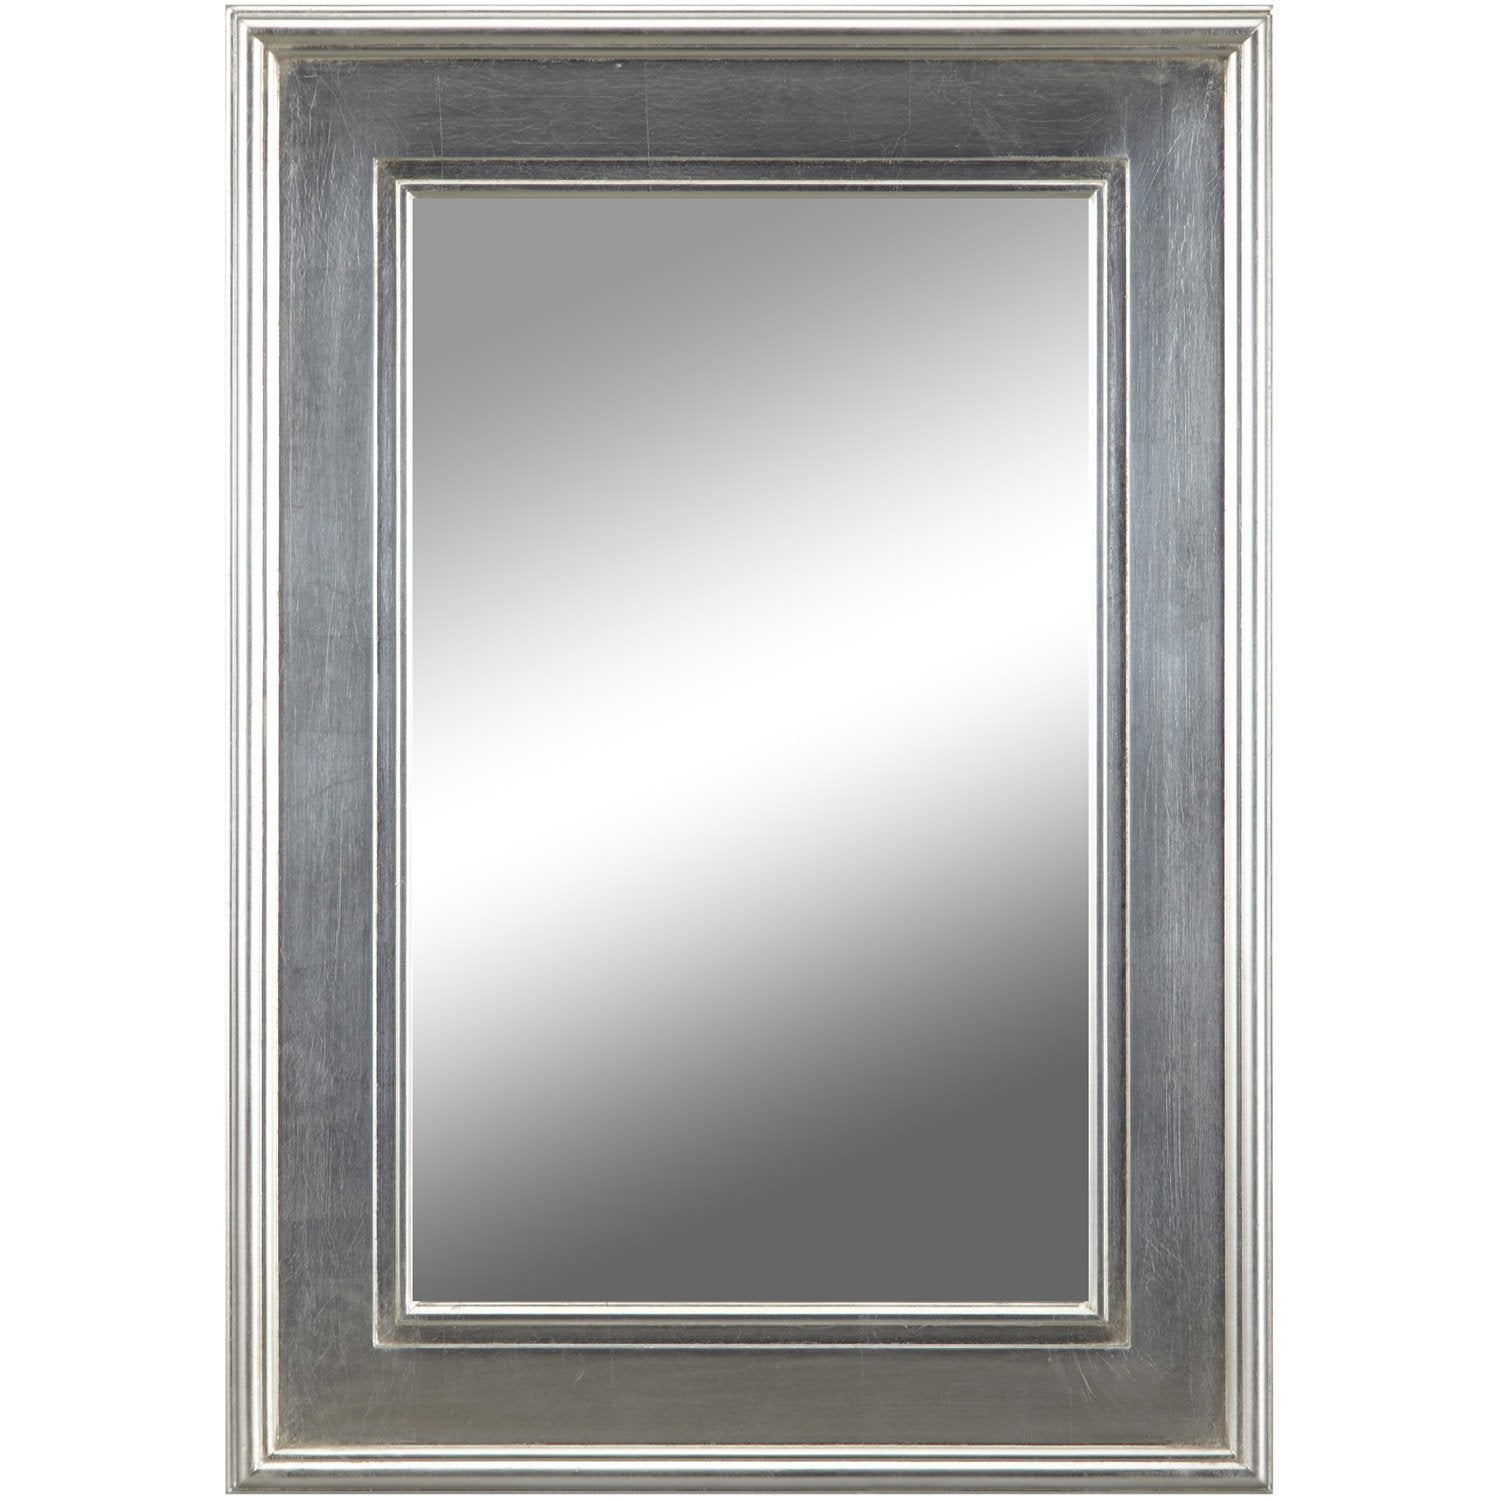 Miroir tisbury rectangle argent 50x70 cm leroy merlin for Wohnzimmertisch 50 x 70